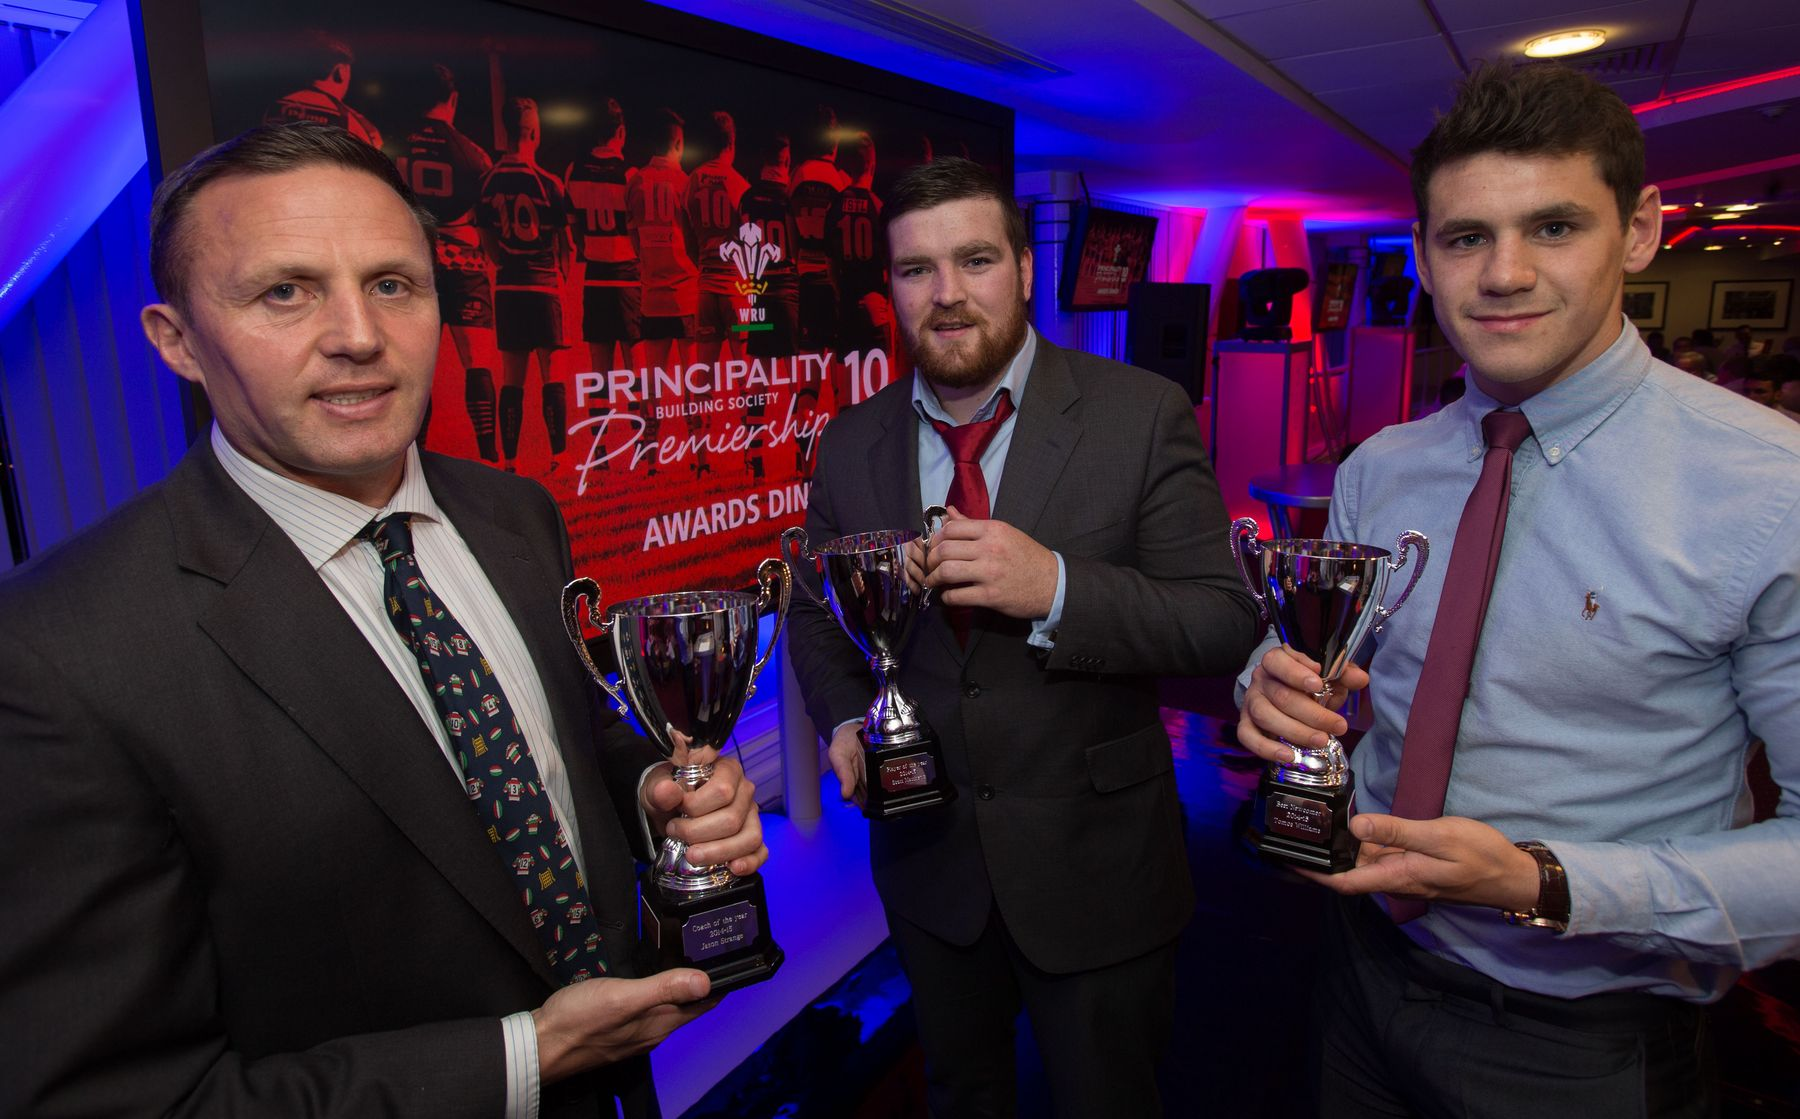 Trio pick up top awards at Premiership Awards Dinner